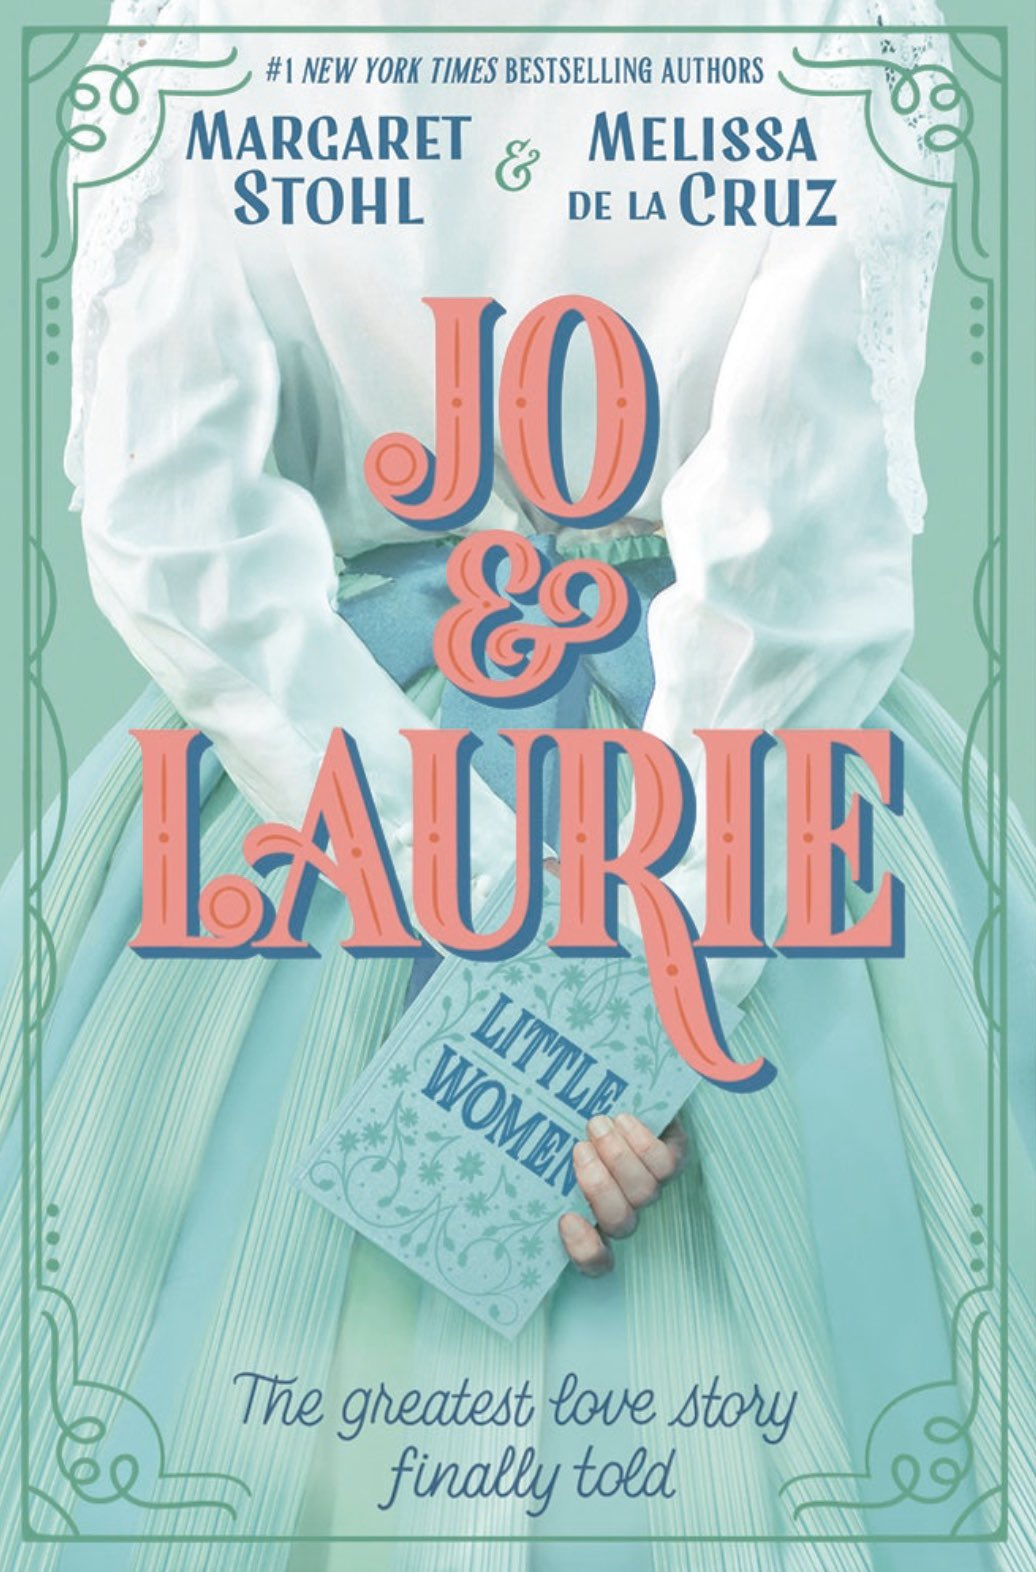 Jo & Laurie by Margaret Stohl